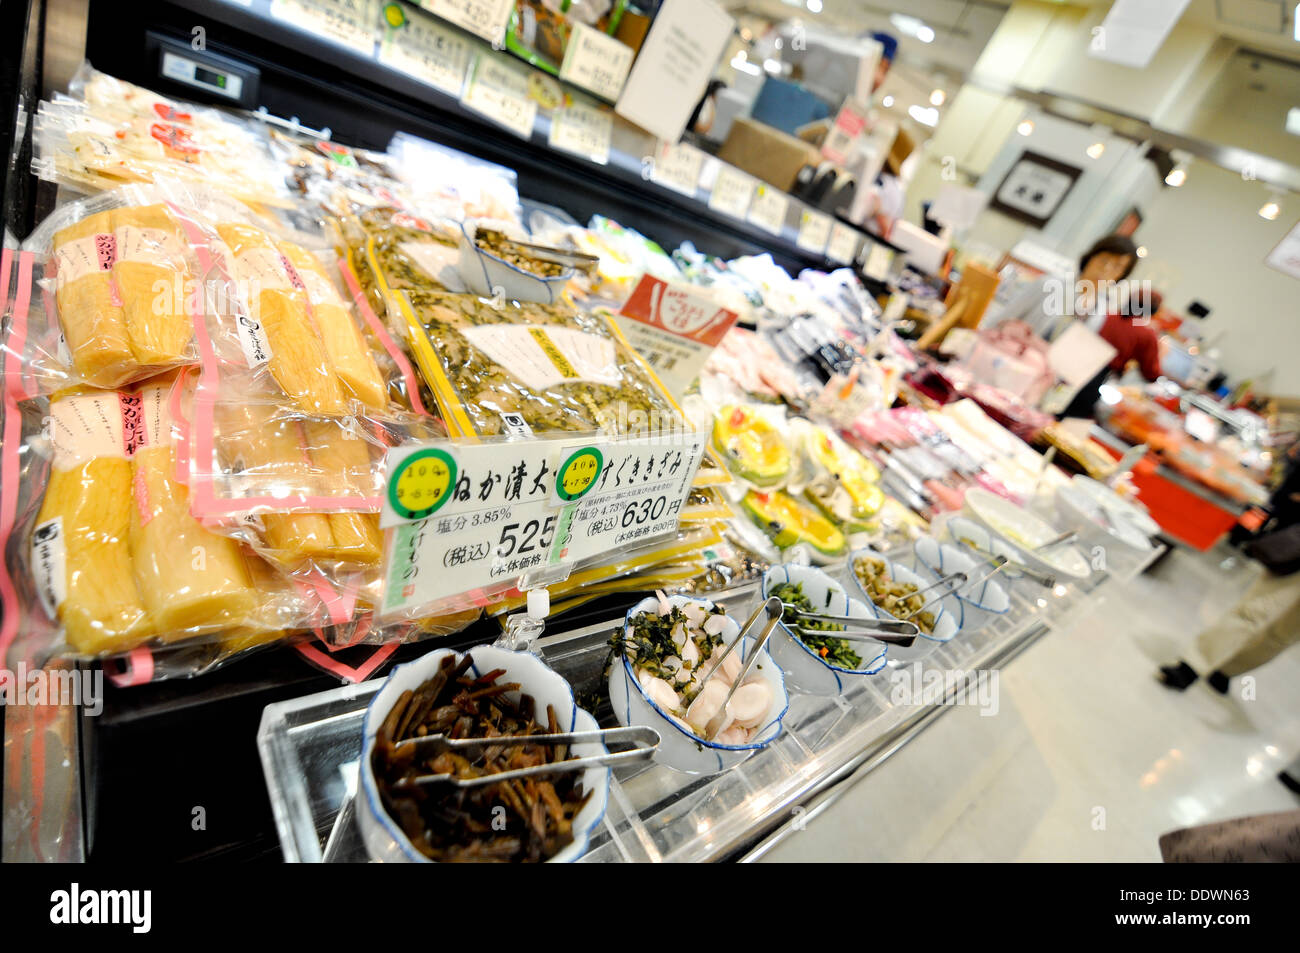 The food floor of a department store in Japan. - Stock Image